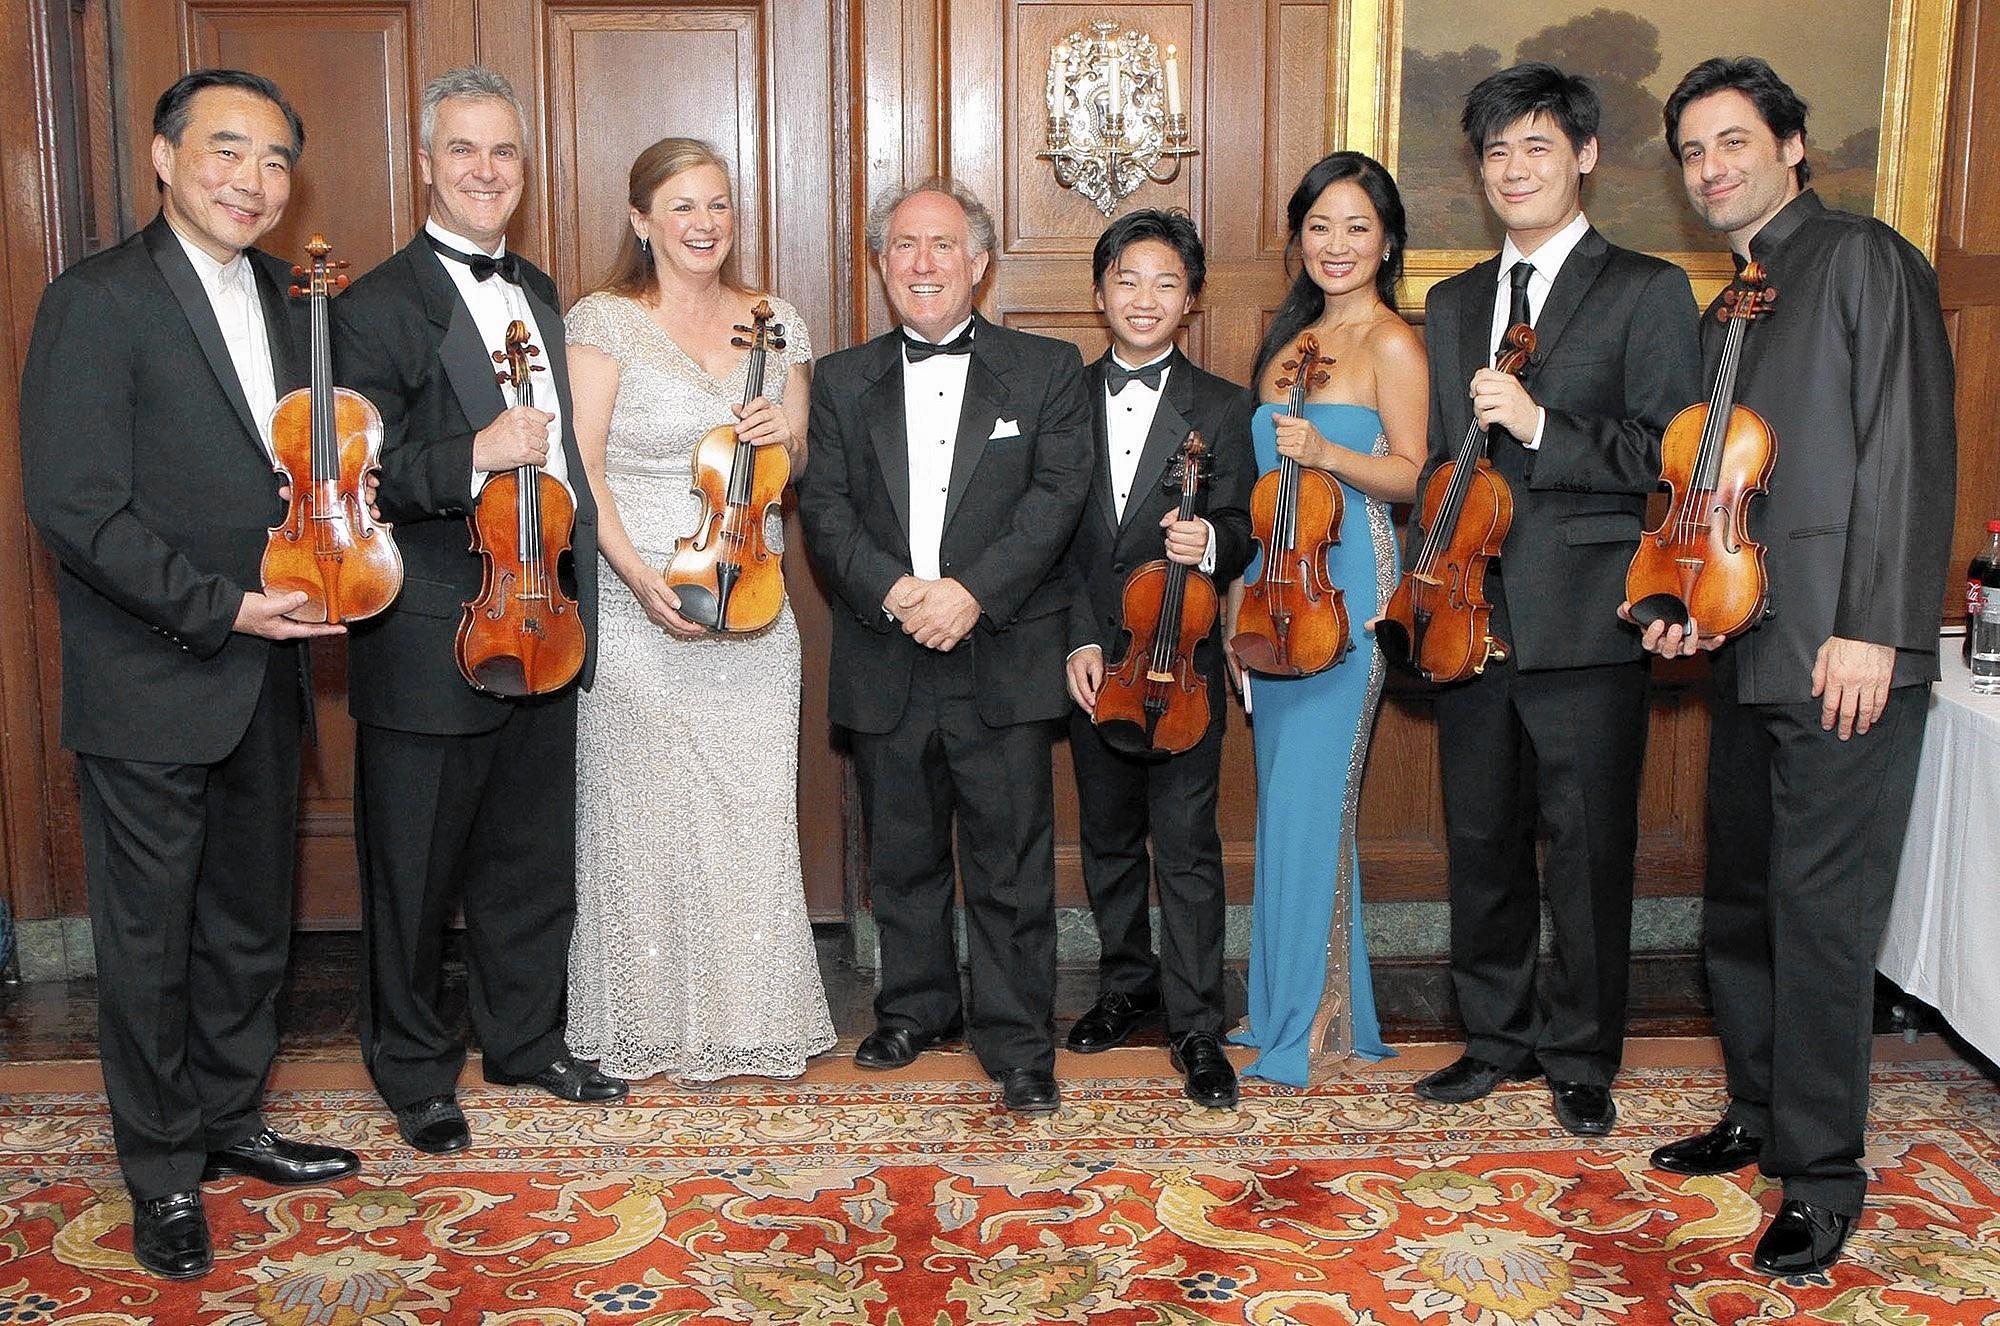 The stars of the night at the L.A. Chamber Orchestra Strad gala are, from left, Cho-Liang Lin, Martin Chalifour, Margaret Batjer, LACO Music Director Jeffrey Kahane, Ray Ushikubo, Chee-Yun, Xiang Yu and Philippe Quint.